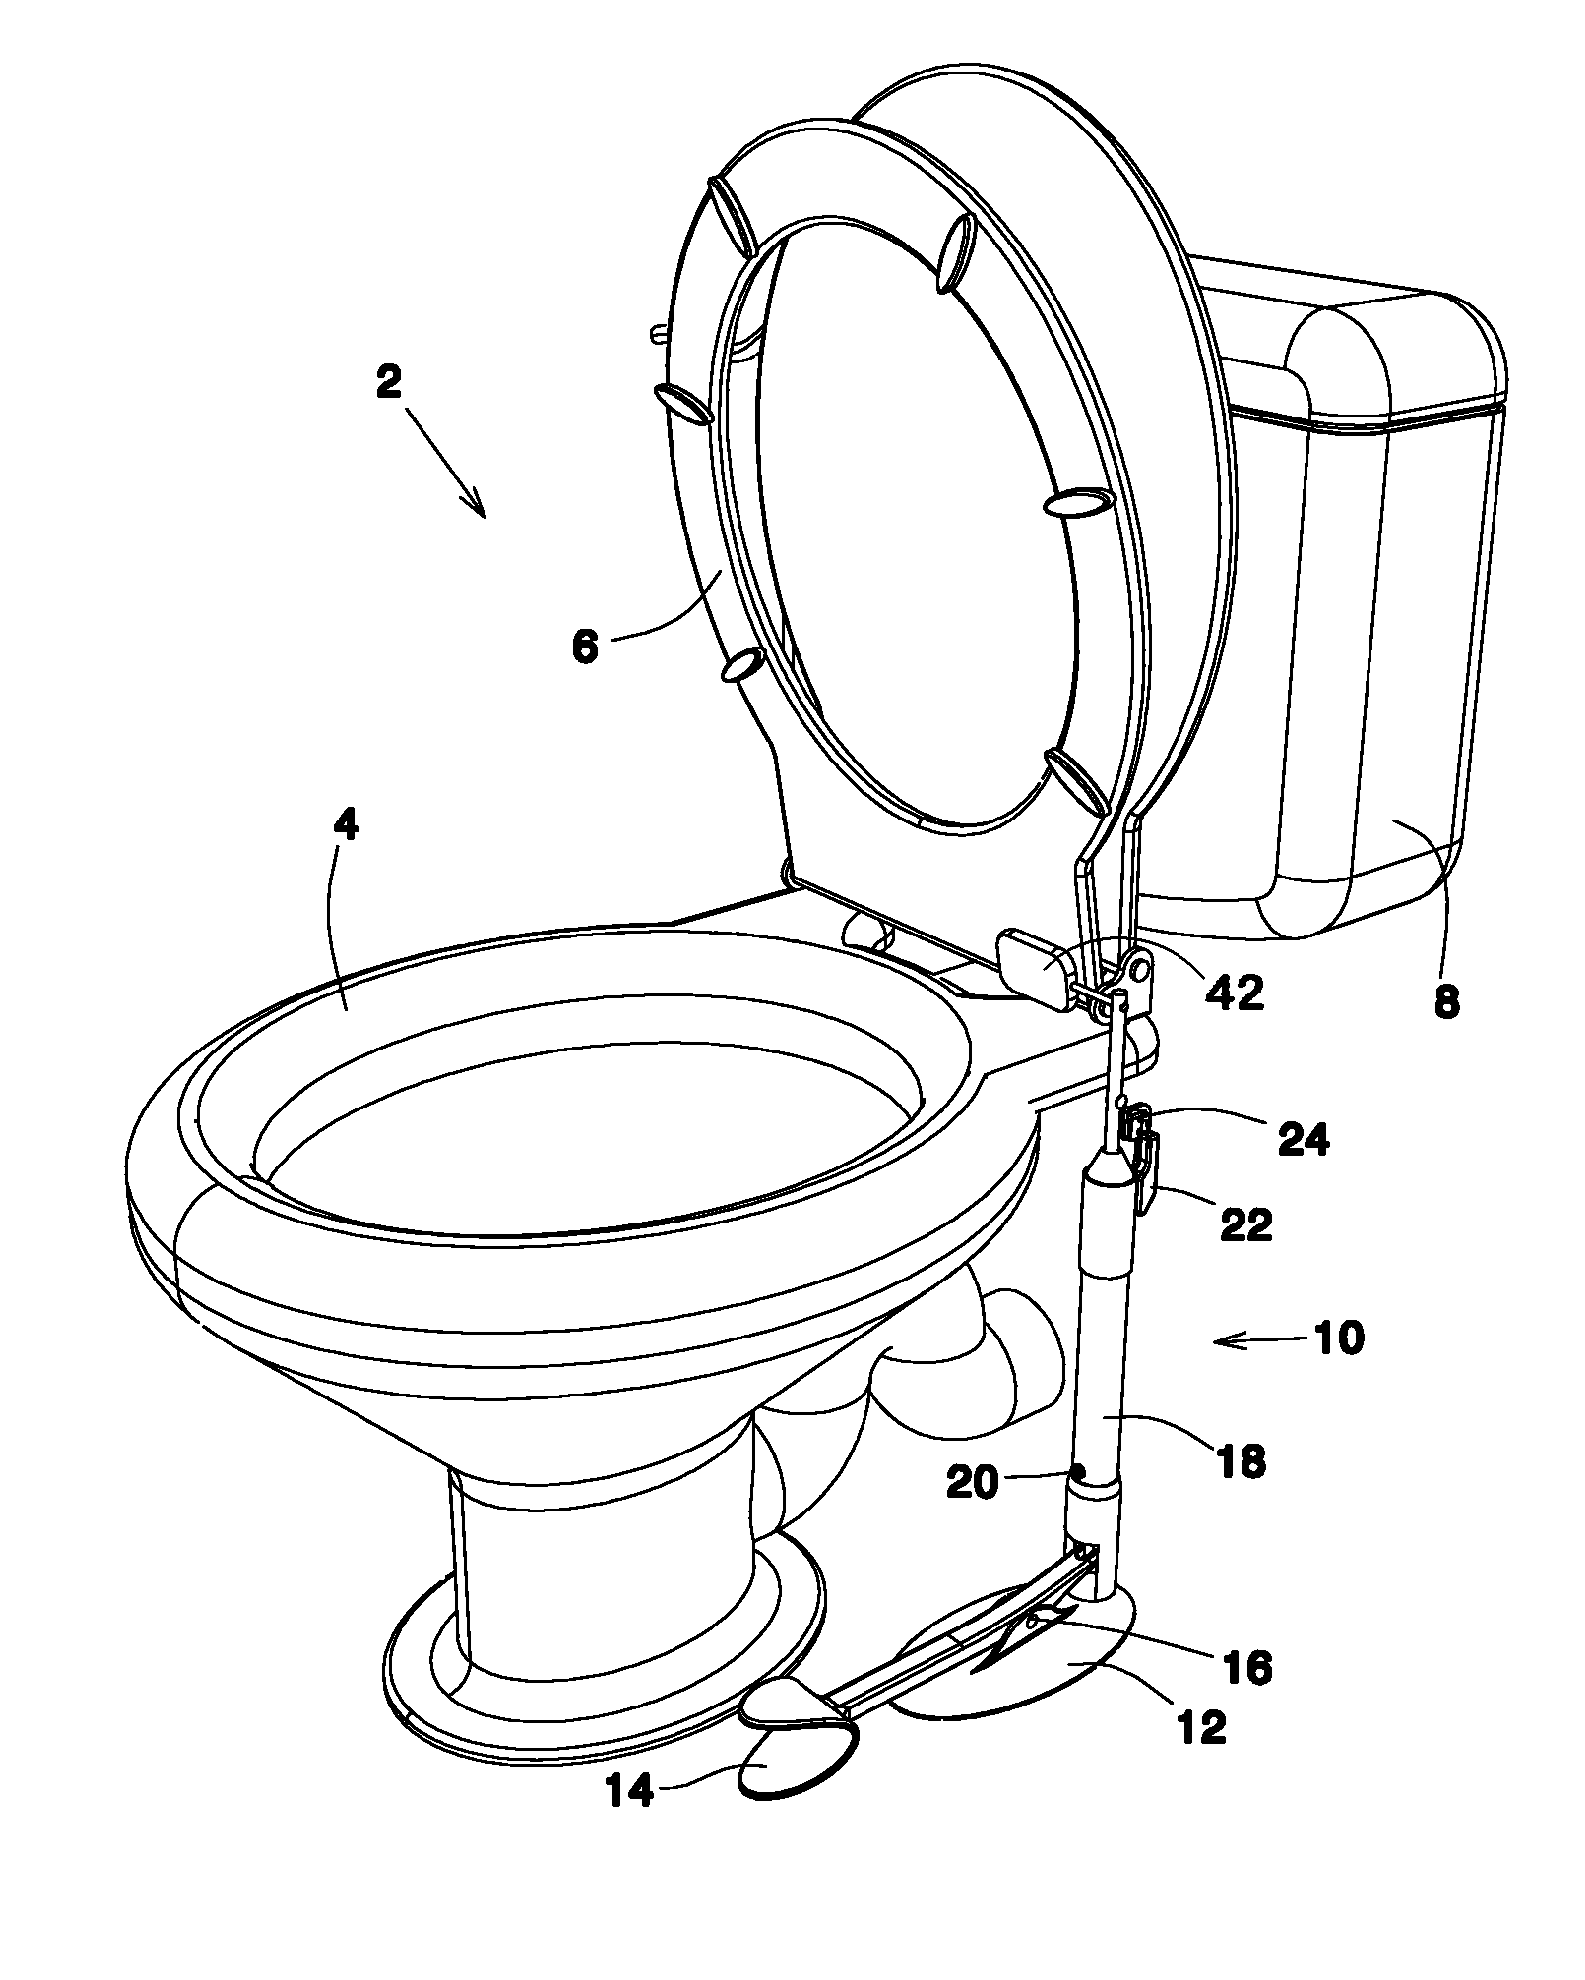 patent us8020221 hands free toilet seat lifting device google patents. Black Bedroom Furniture Sets. Home Design Ideas